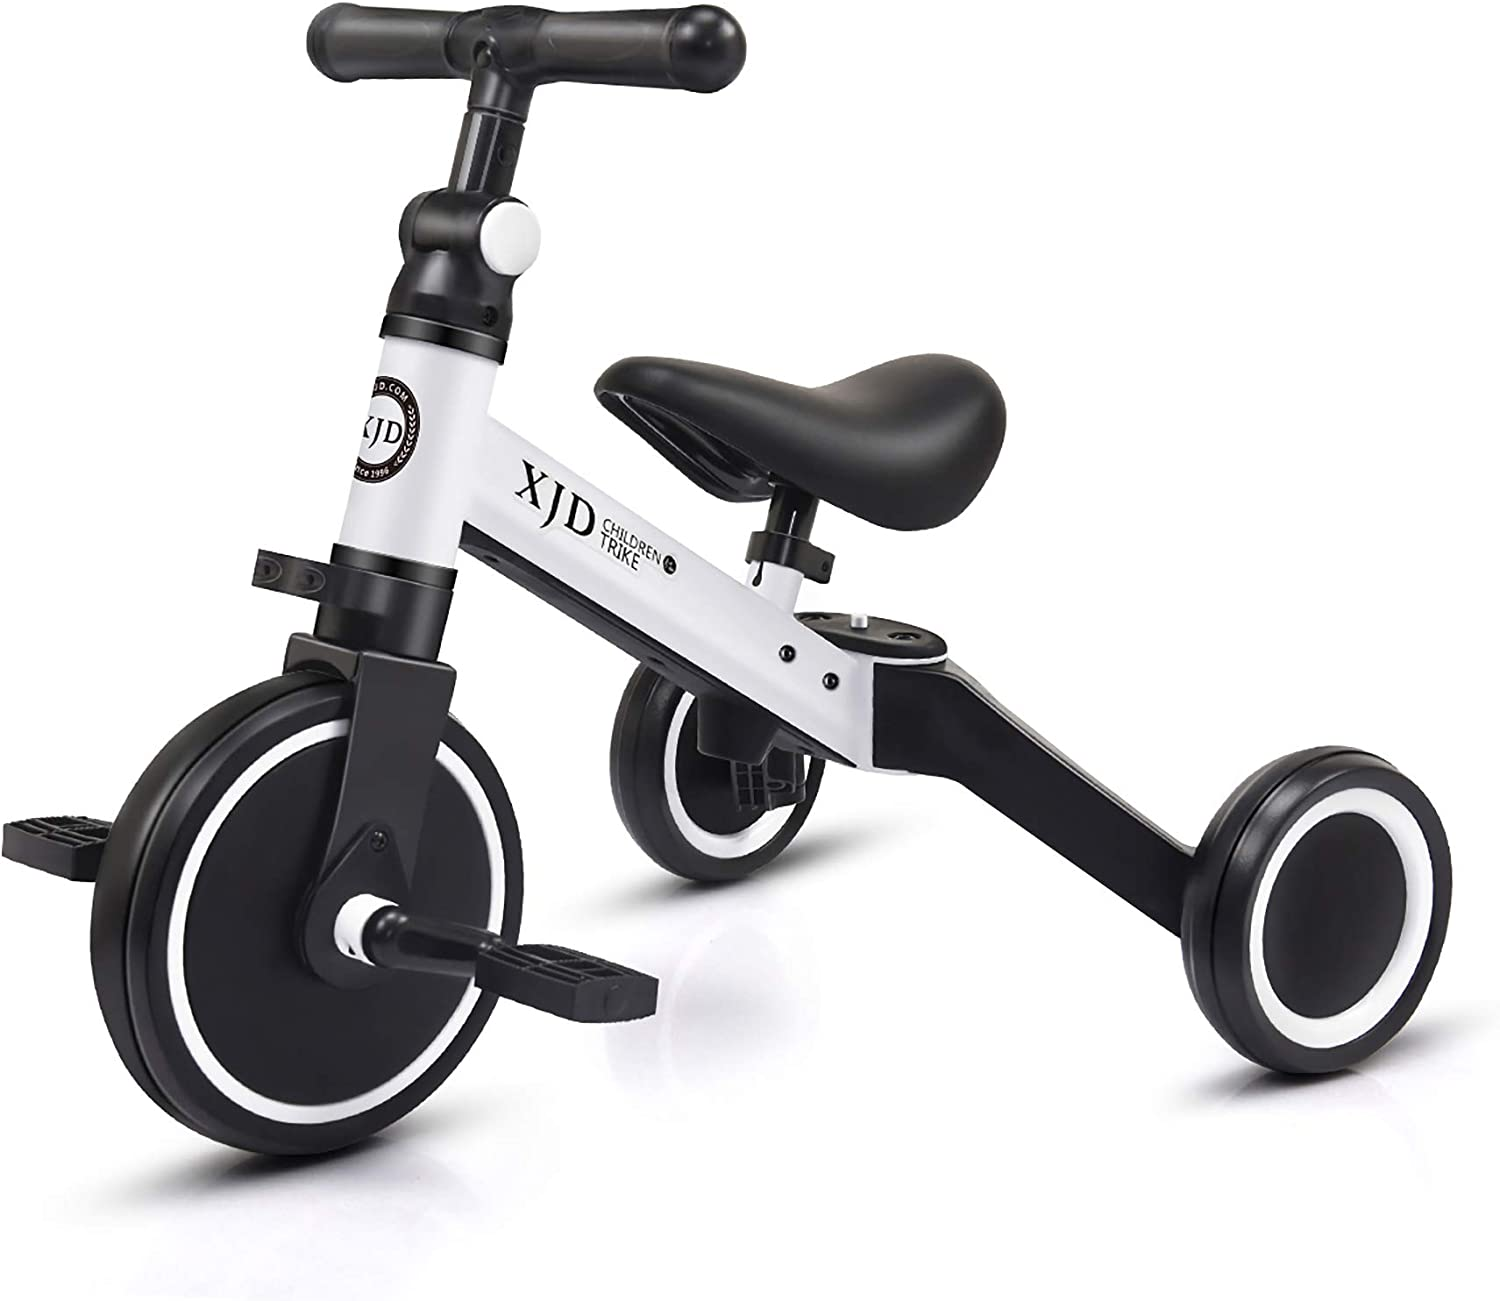 XJD 3 in 1 Kids Tricycles for 1-3 Years Old Kids Trike 3 Wheel Toddler Bike Boys Girls Trikes for Toddler Tricycles Baby Bike Trike Upgrade 2.0, White : Sports & Outdoors